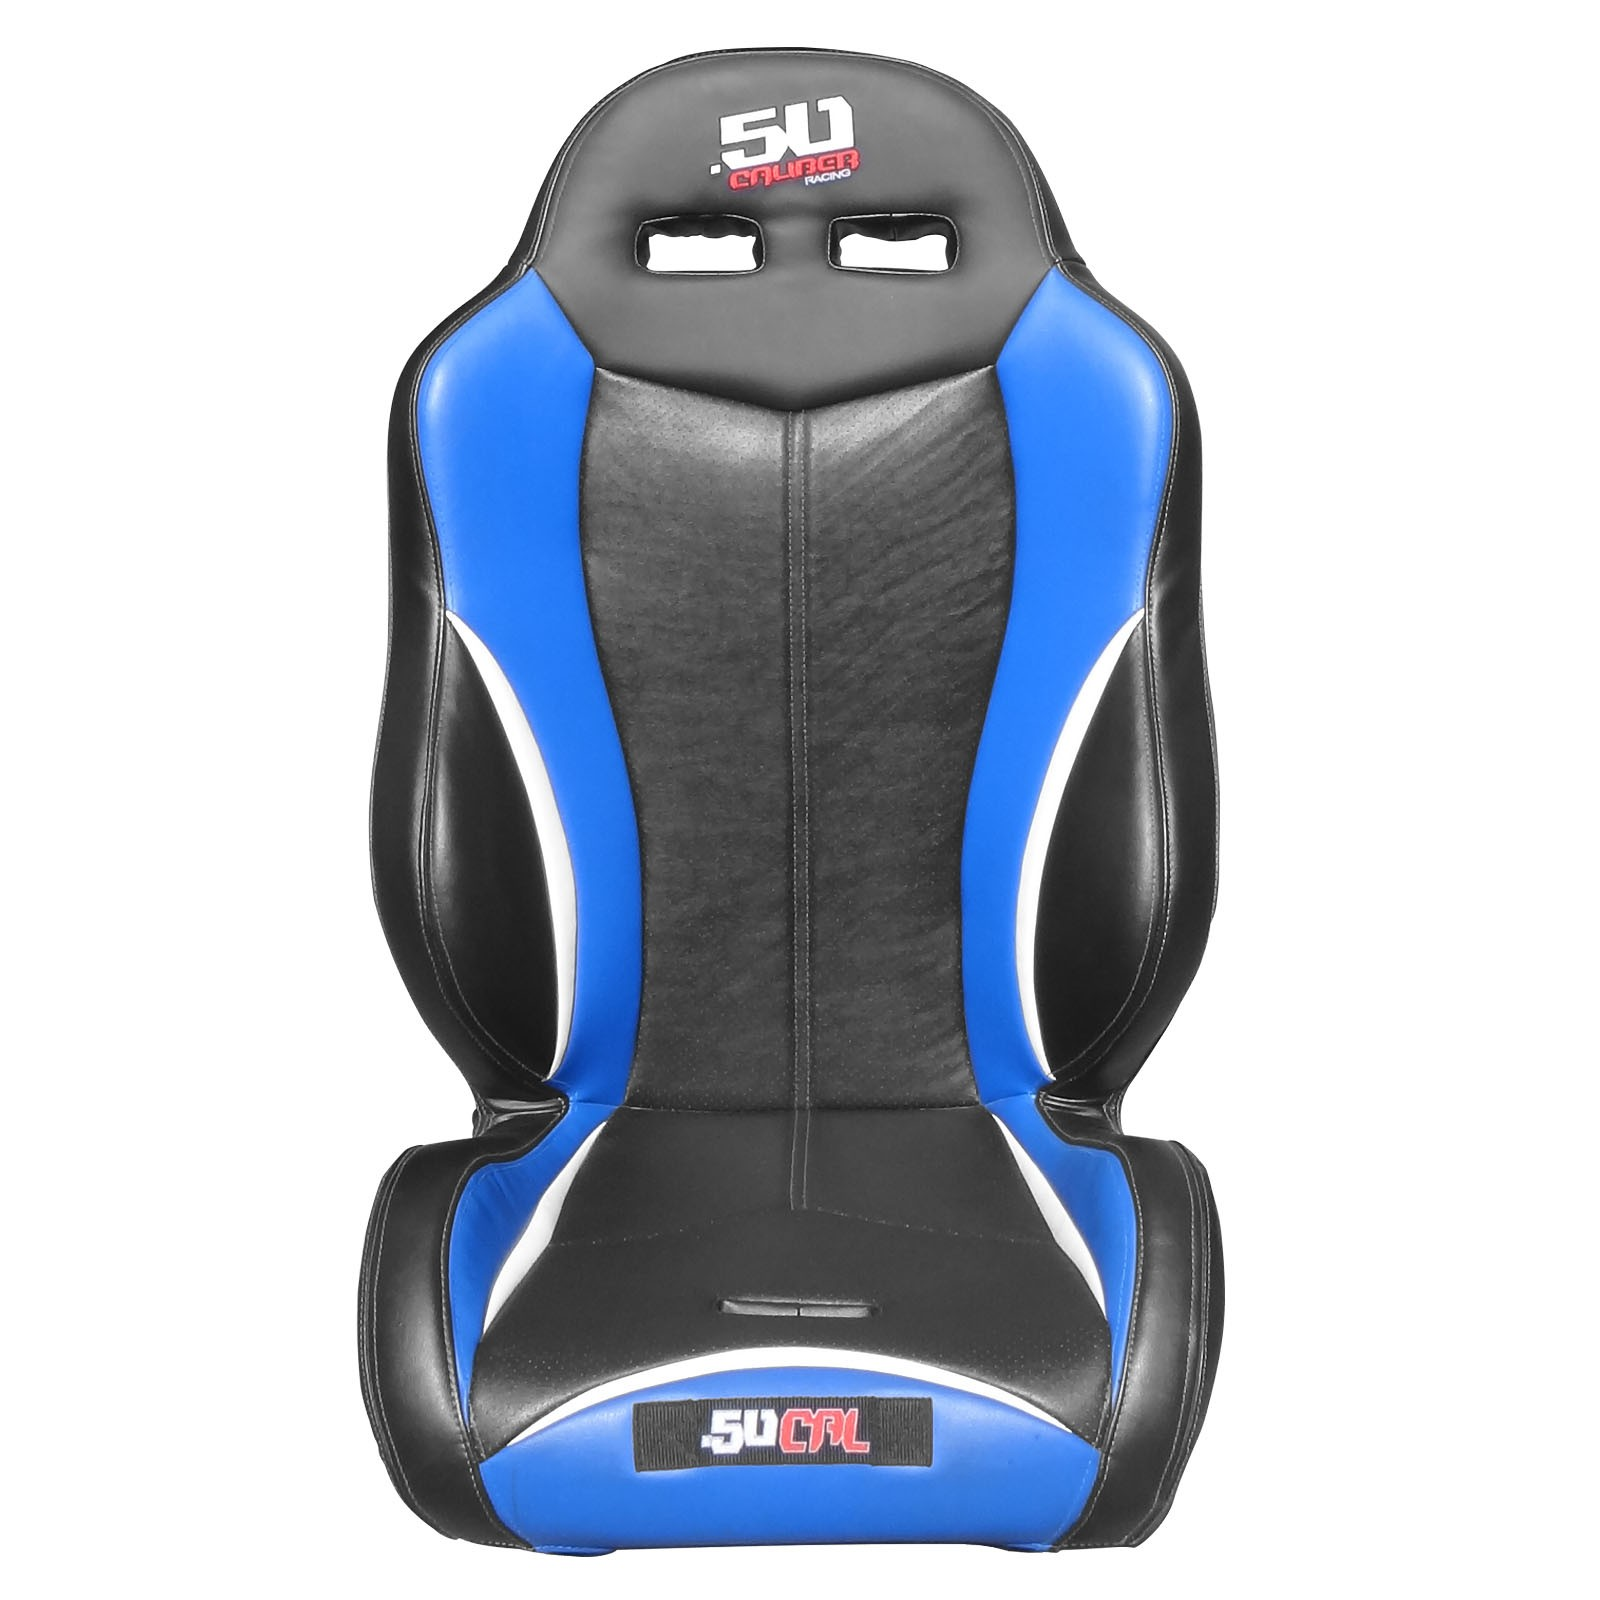 Sand Rail Seats : Blue off road racing suspension seat comfort safety sand